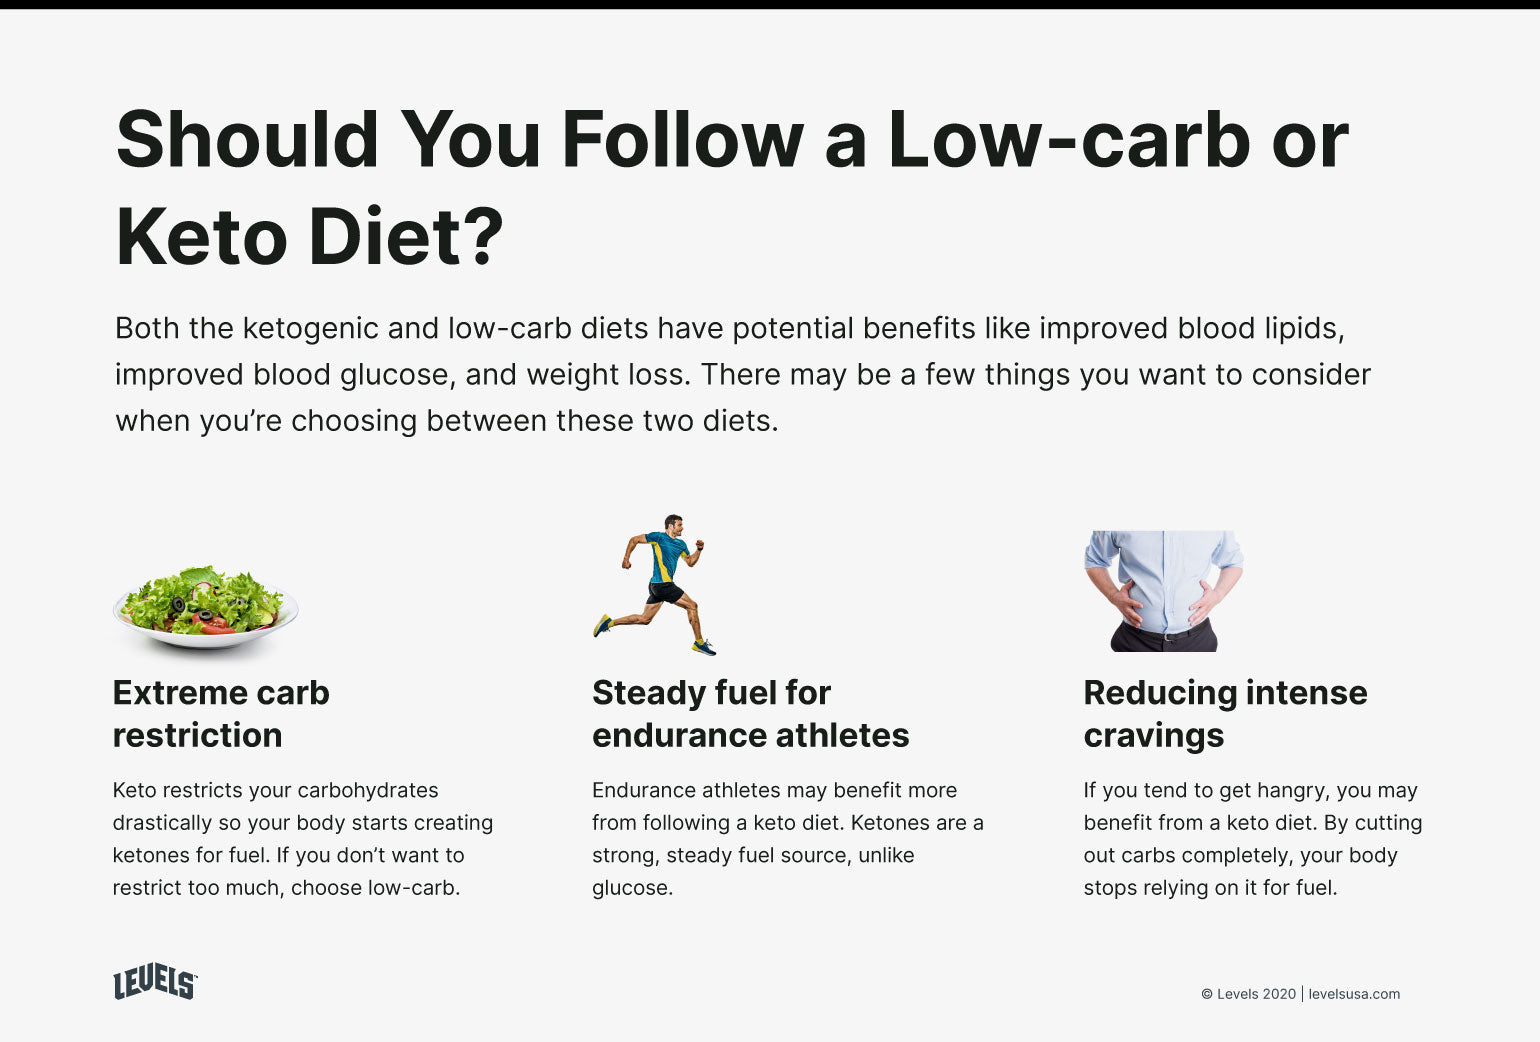 Should You Follow a Low-carb or Keto Diet - Infographic